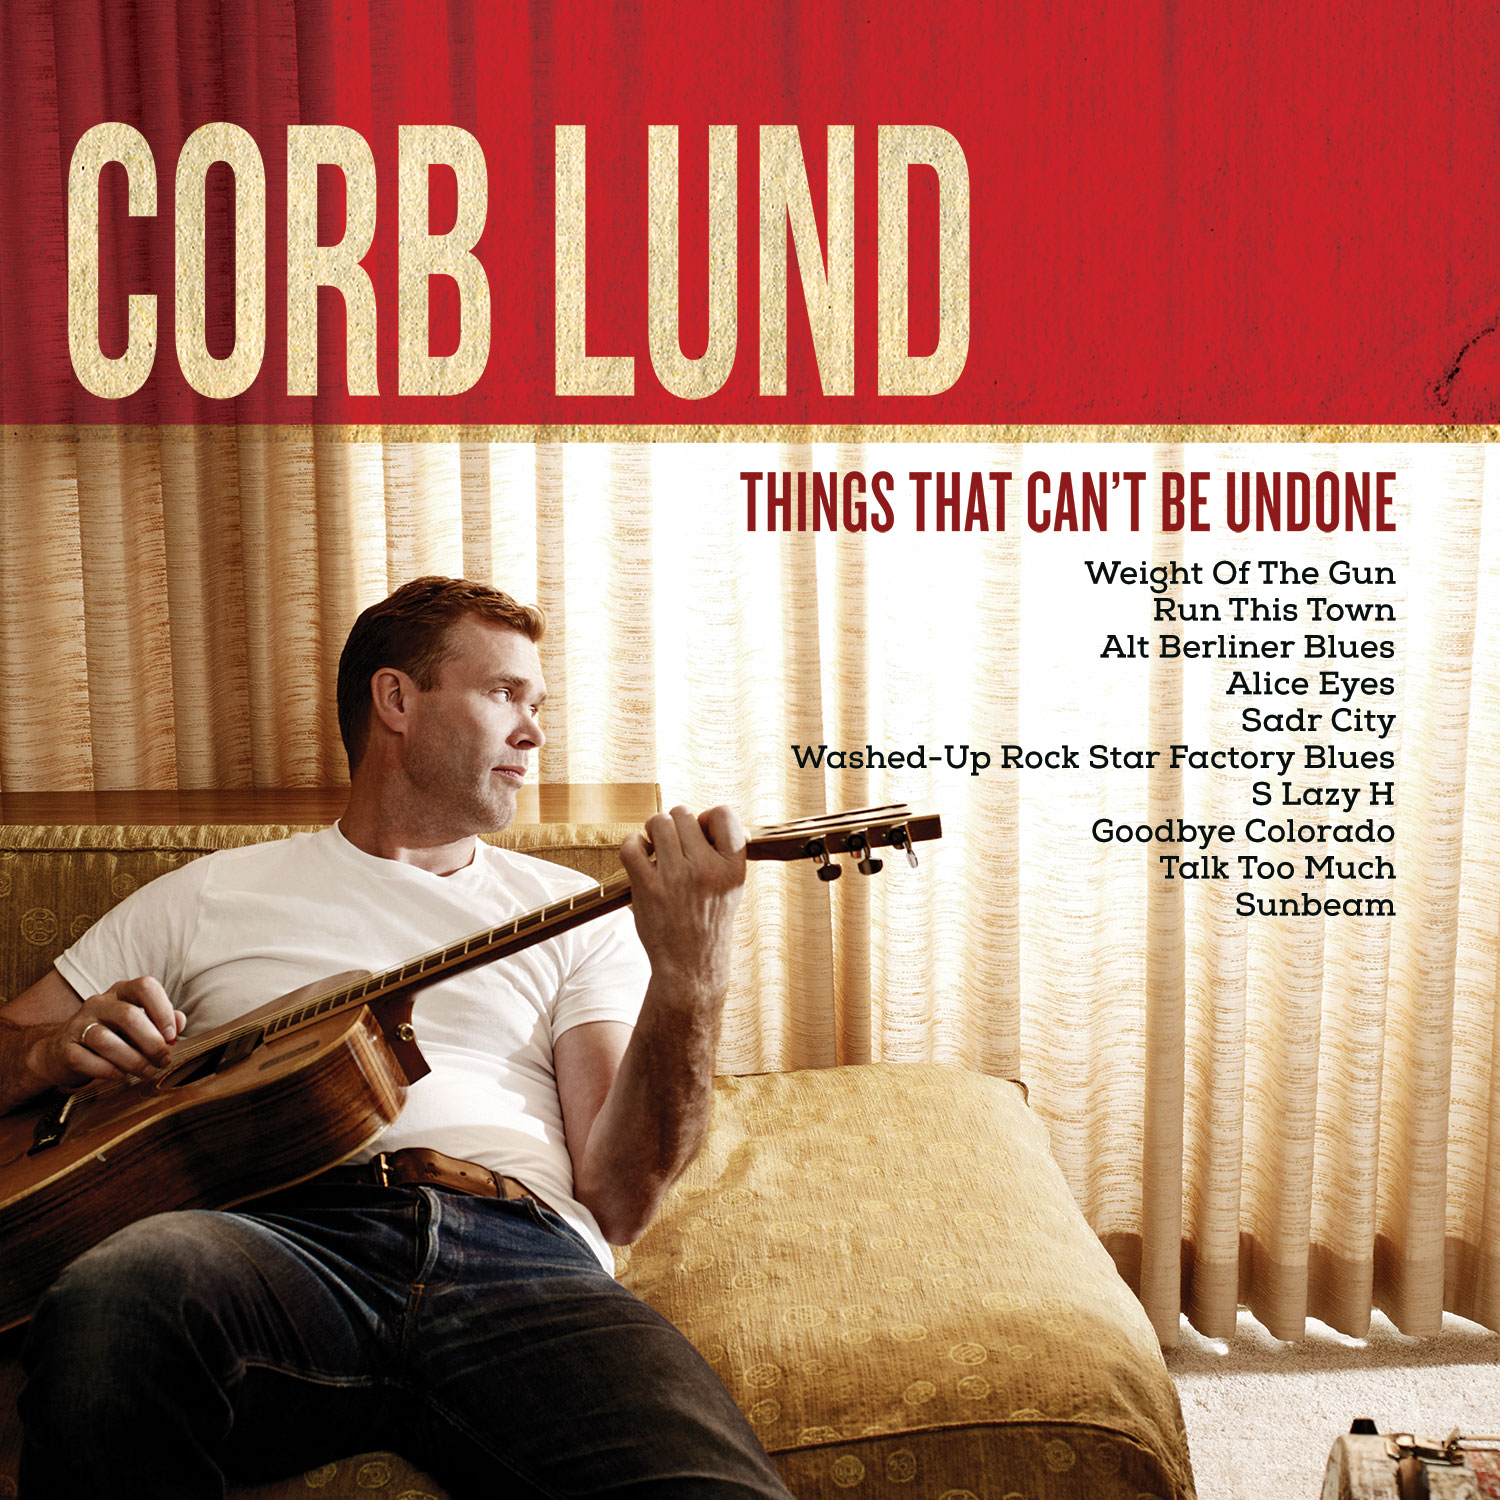 corb-lund-things-cant-be-undone-8221.jpg